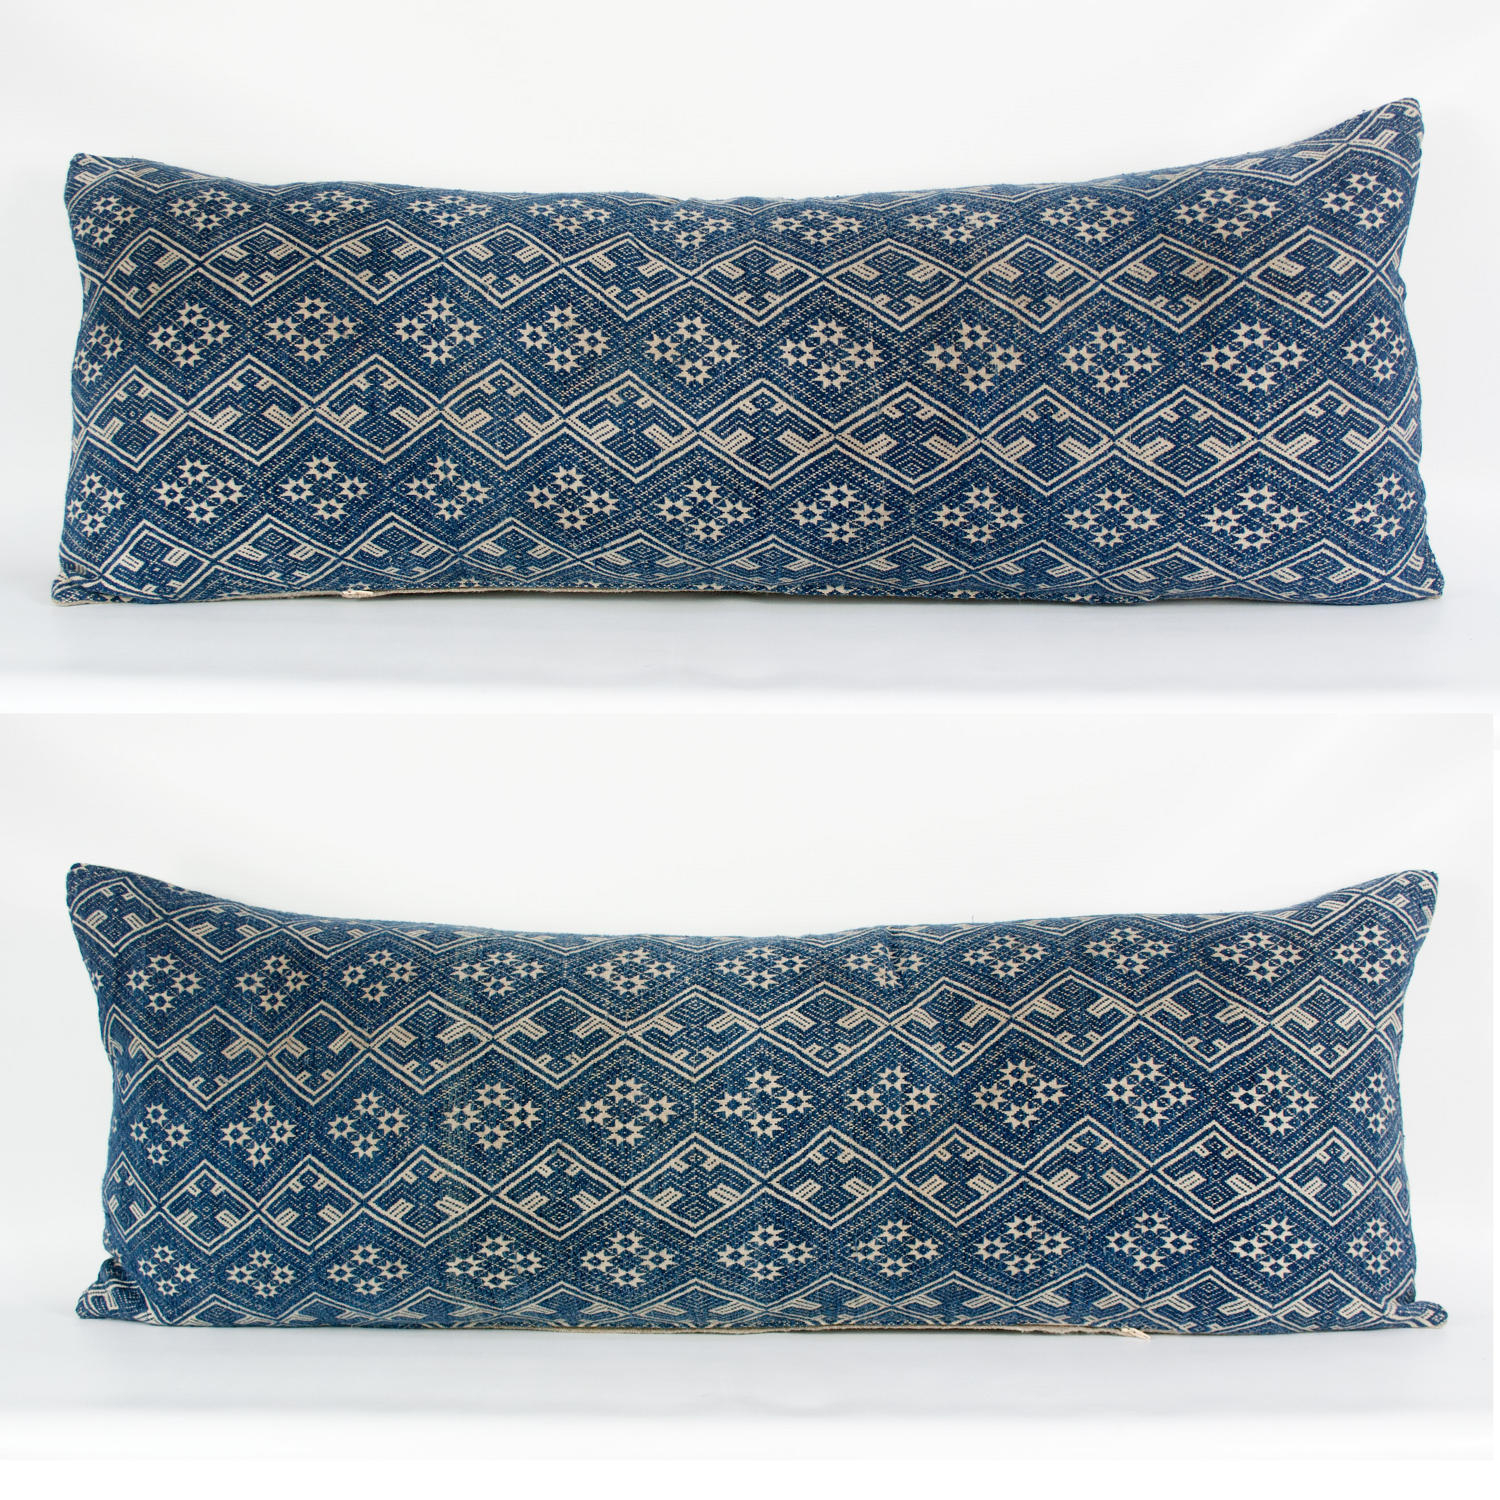 Early Zhaung Wedding Blanket Cushions